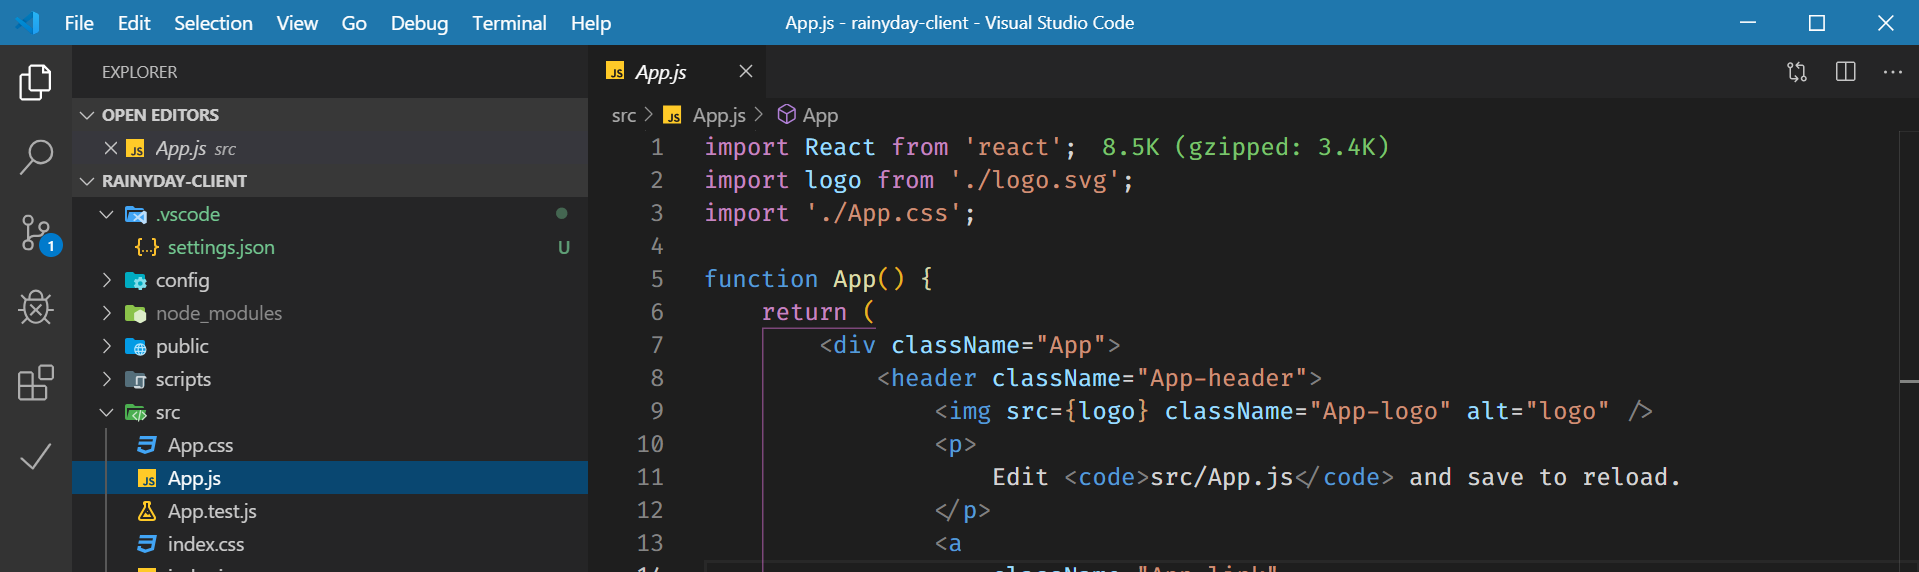 React project in VS Code